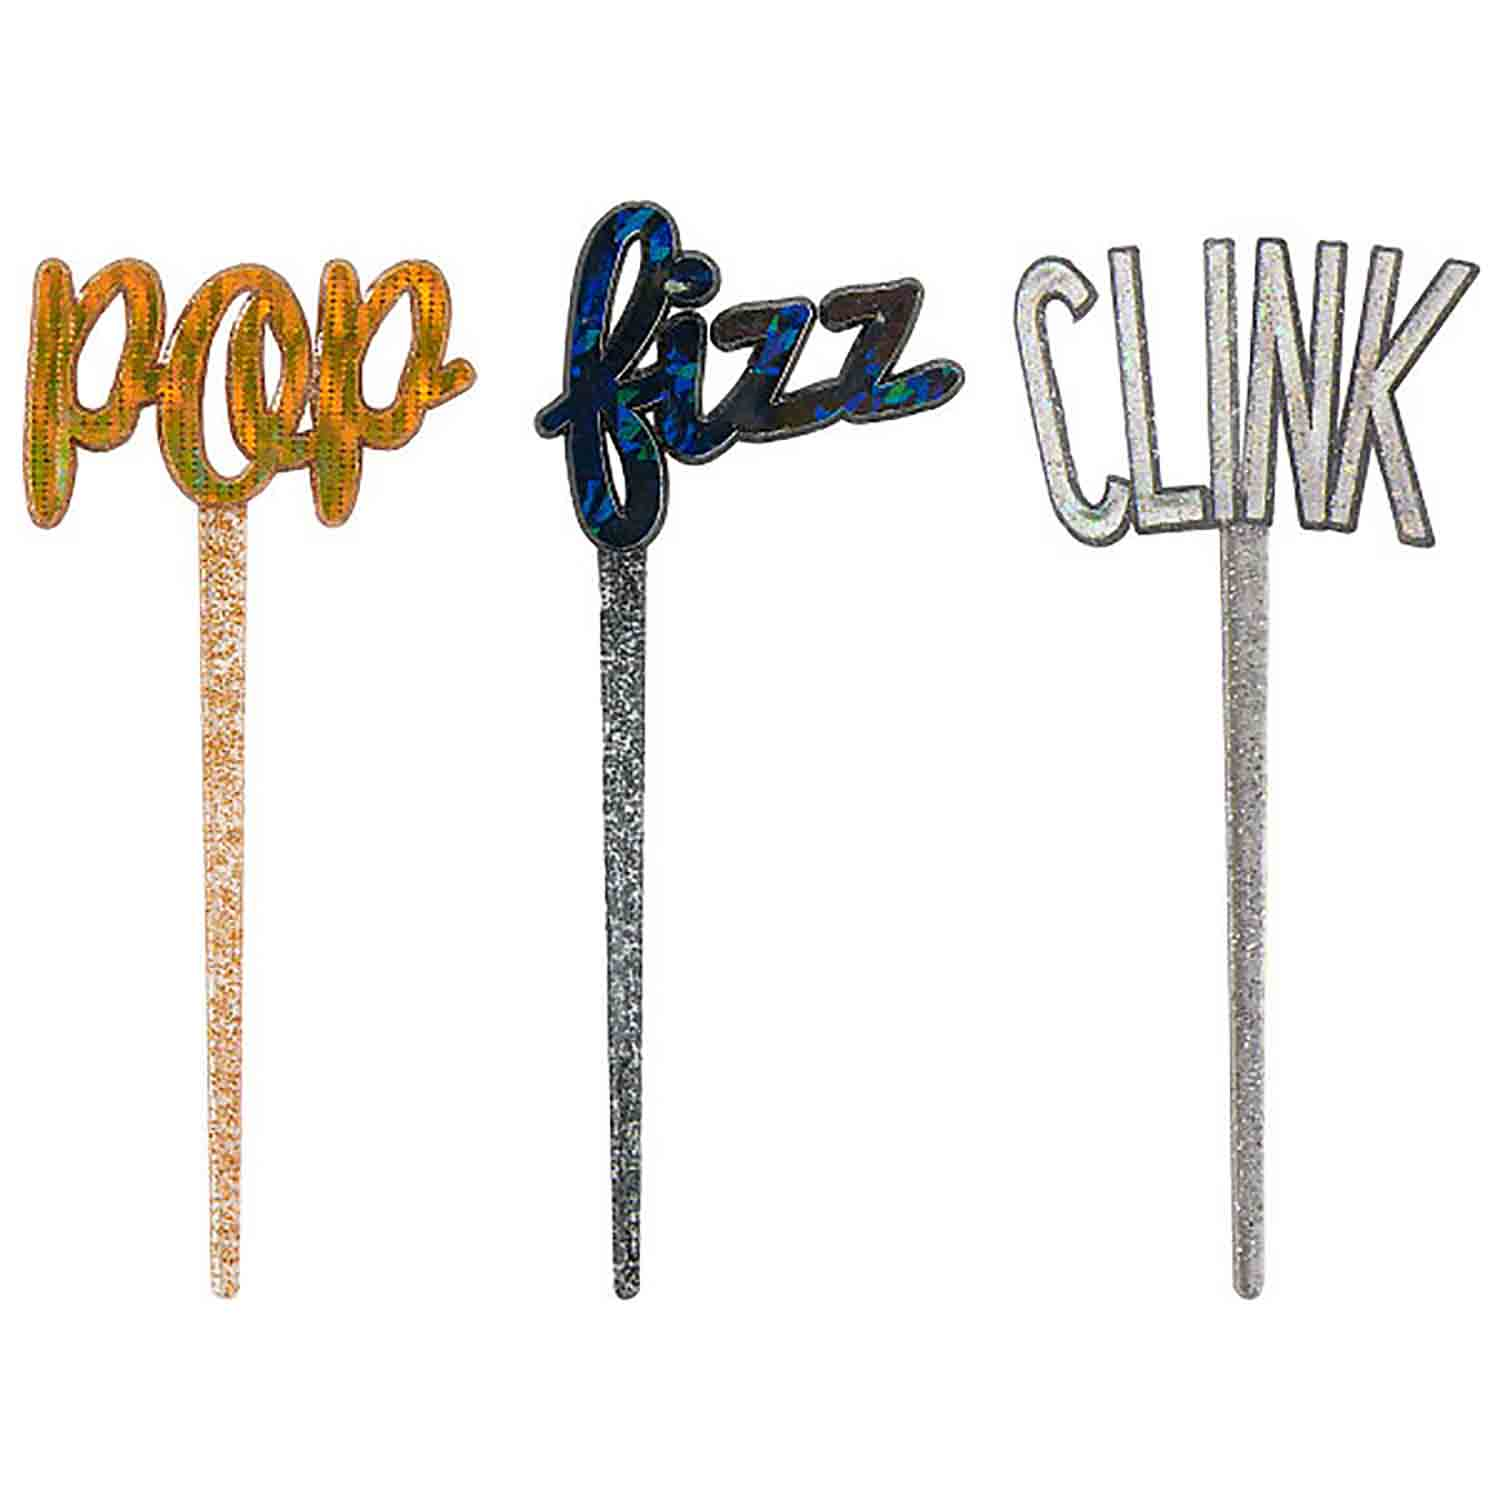 Pop Fizz Clink Picks